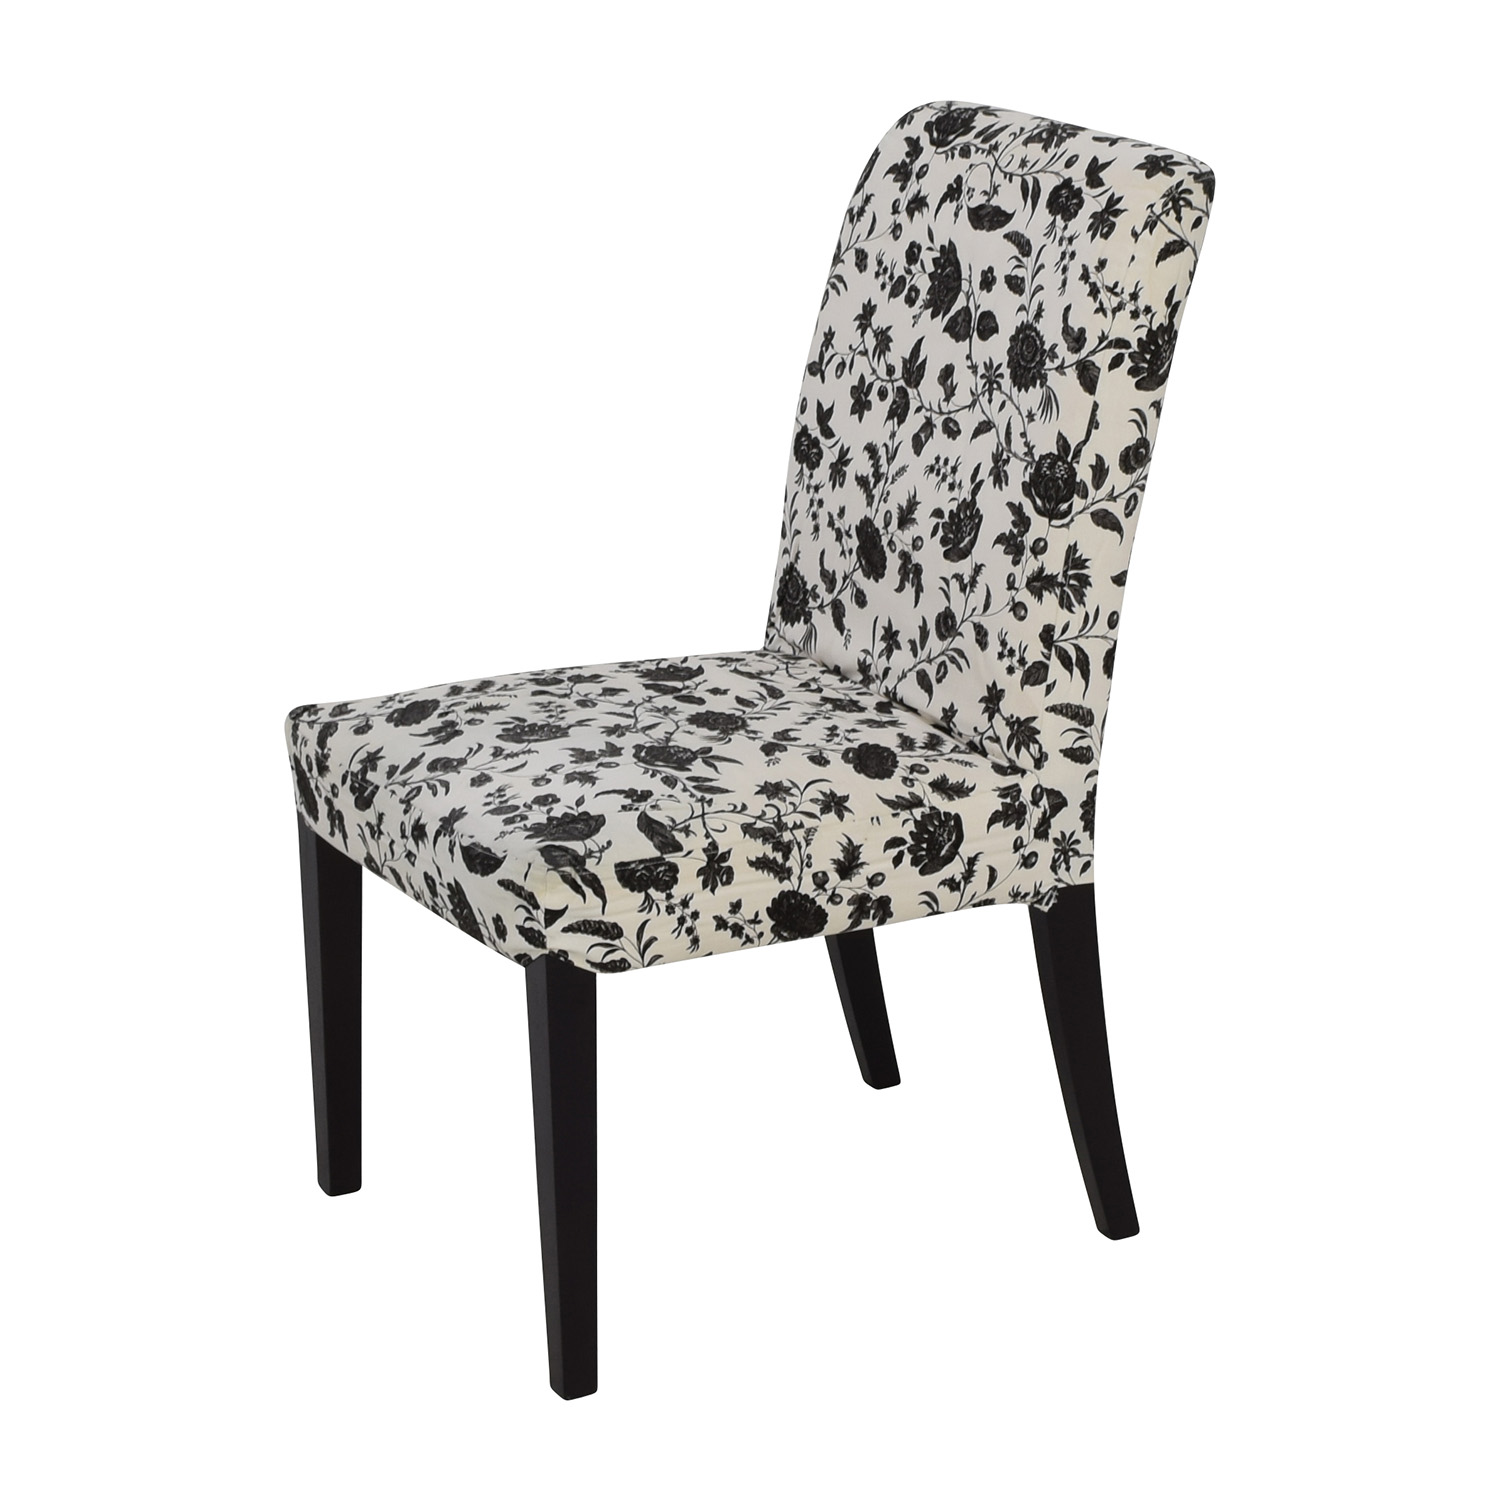 Black And White Dining Chair: Black & White Floral Dining Chair / Chairs